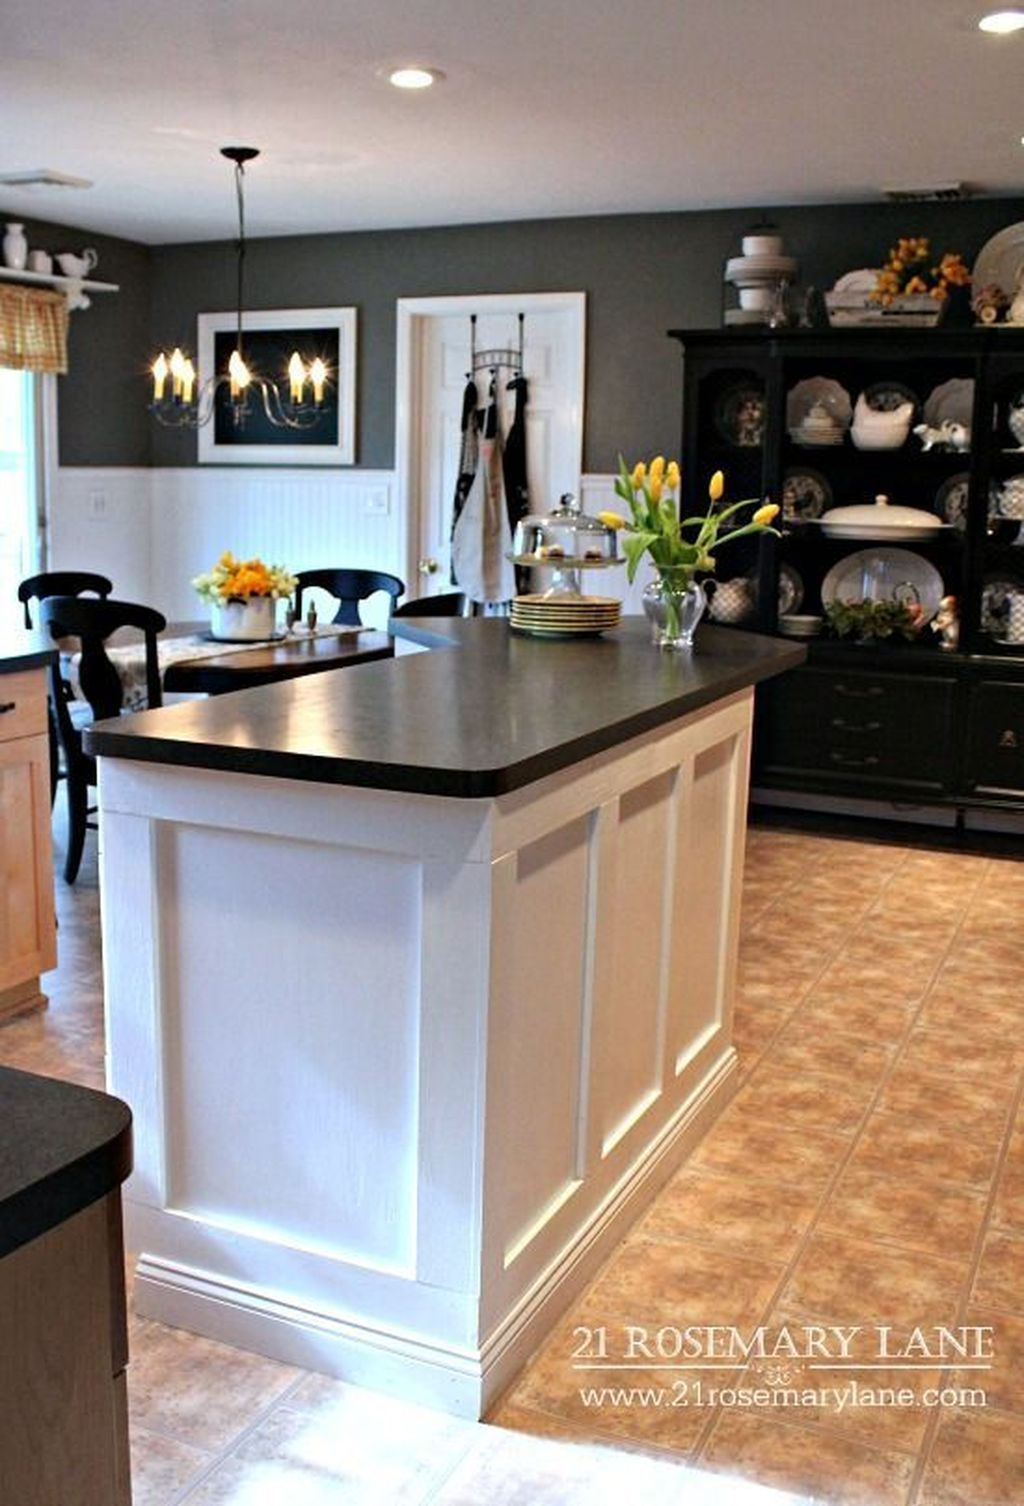 38 Inspiring Kitchen Island Decoration Ideas Kitchen